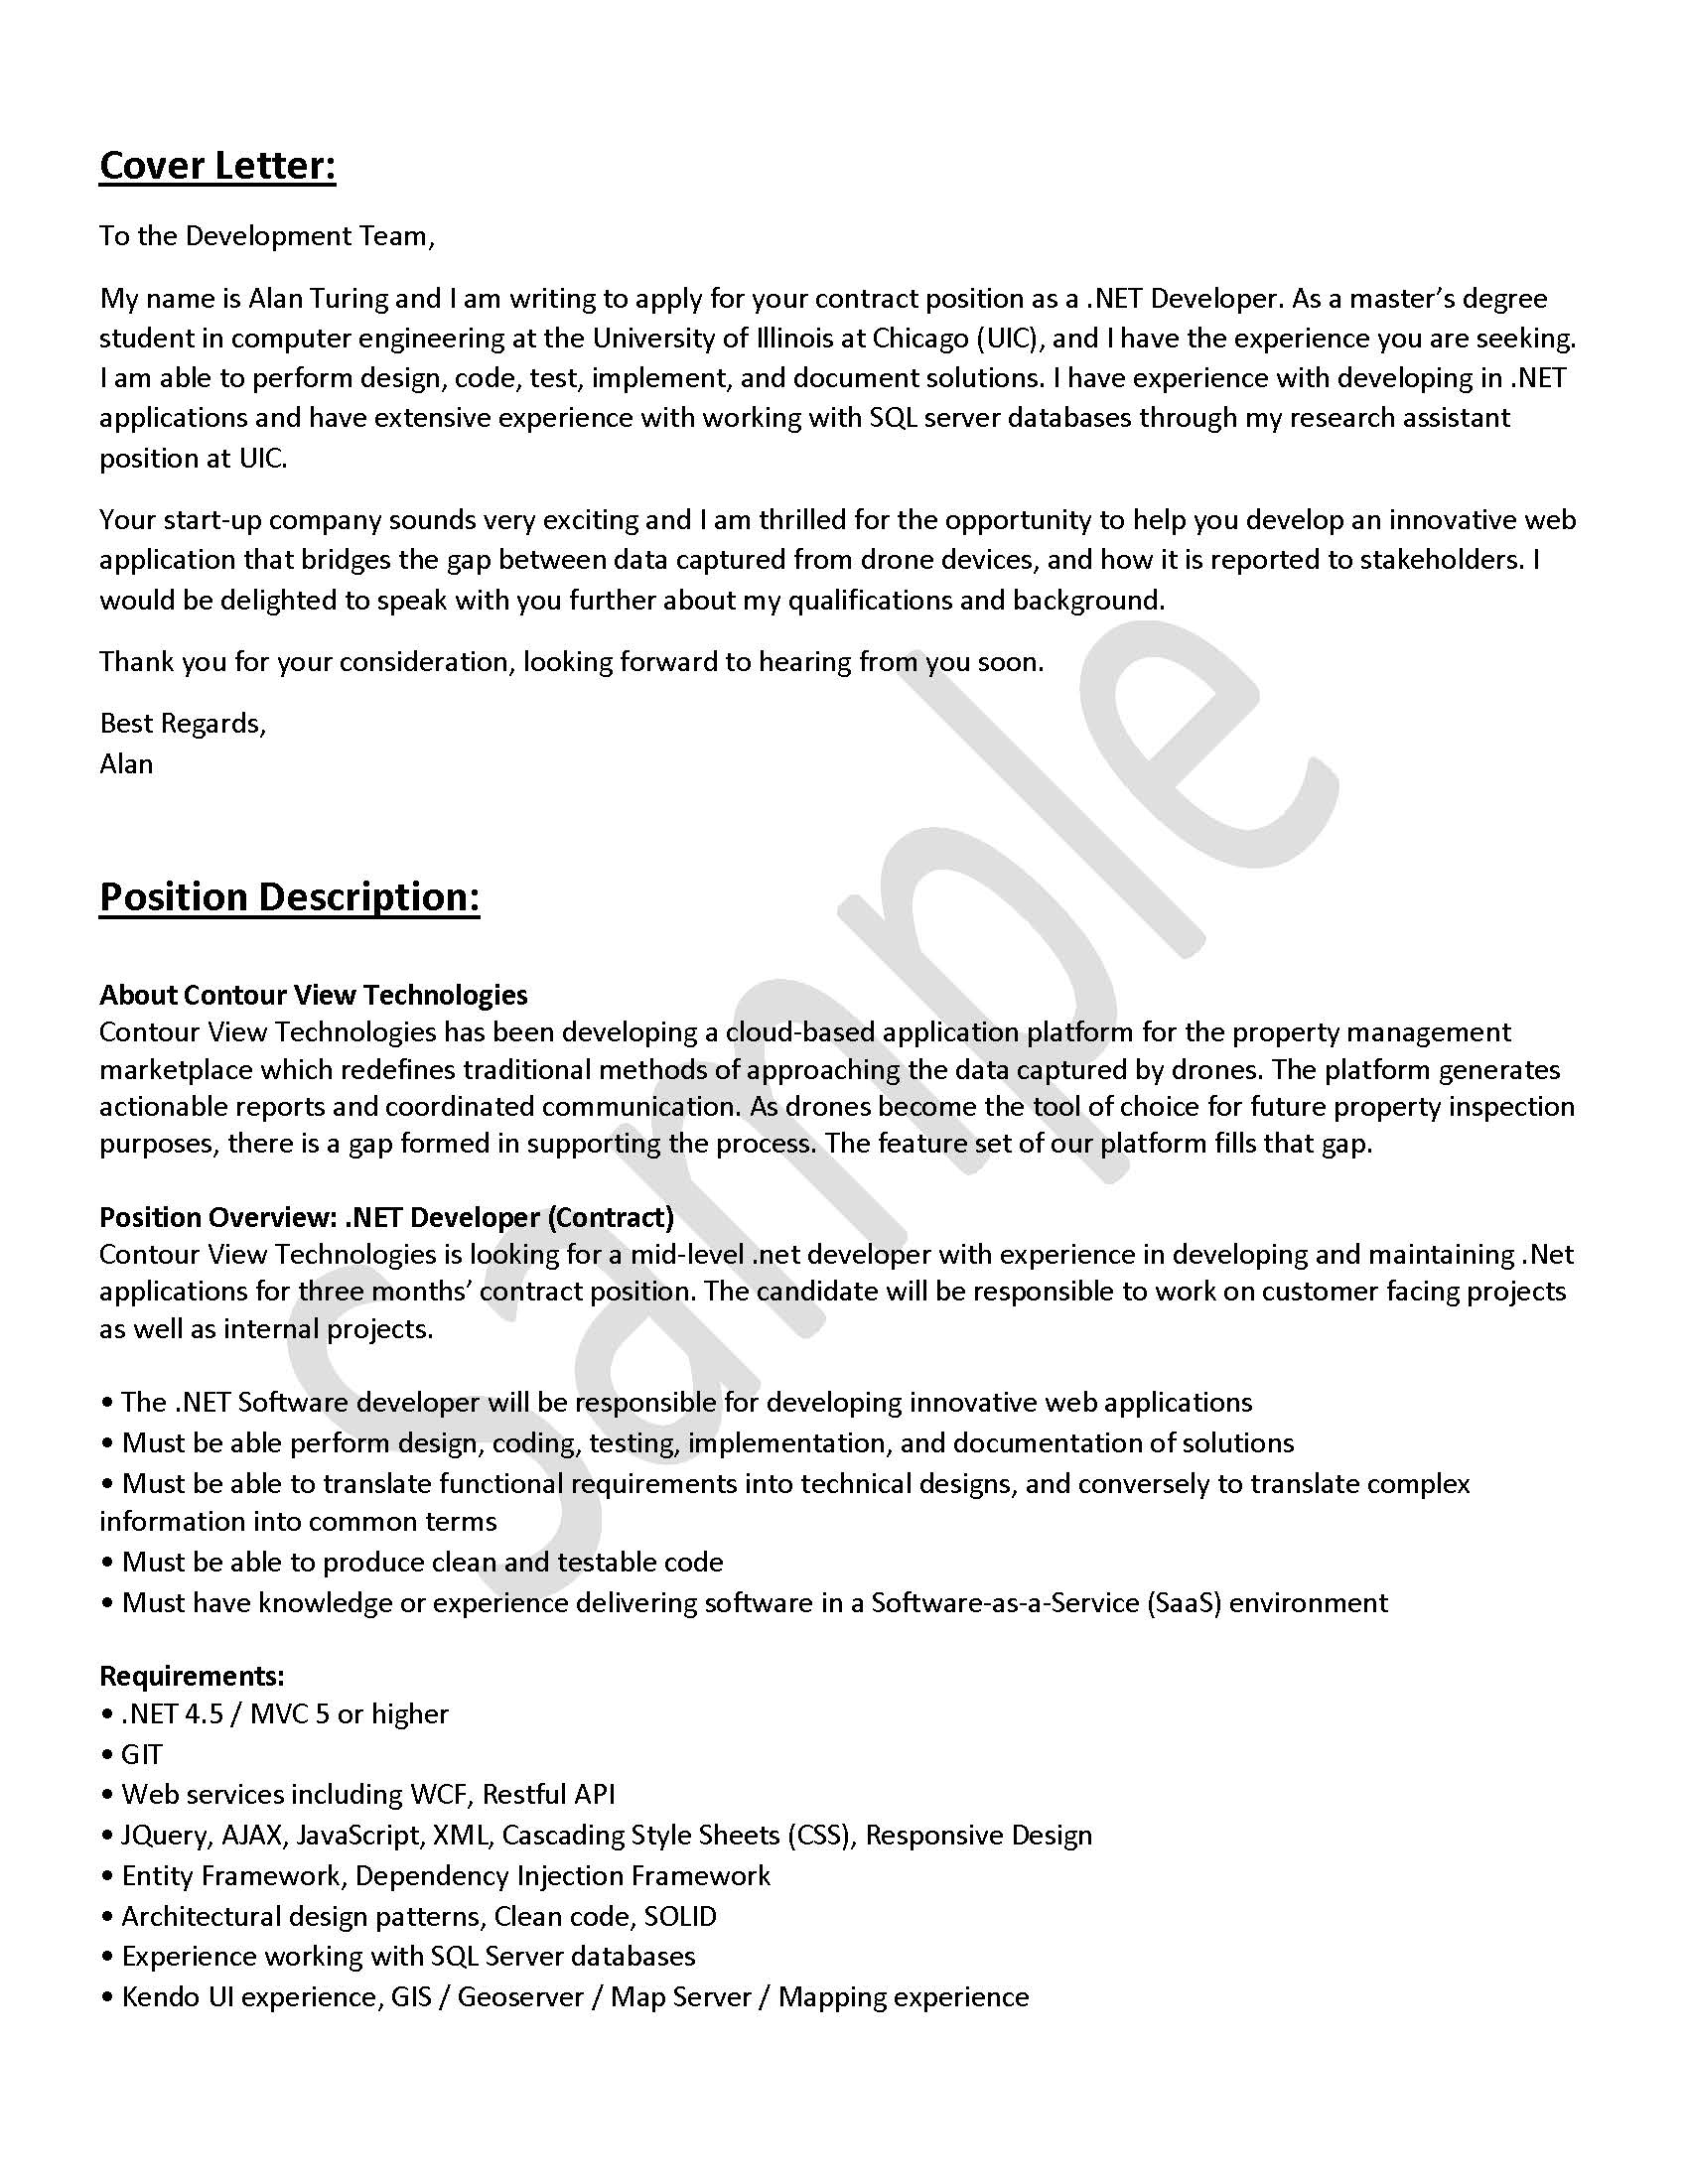 Email or Text Box Cover Letter | Engineering Career Center ...